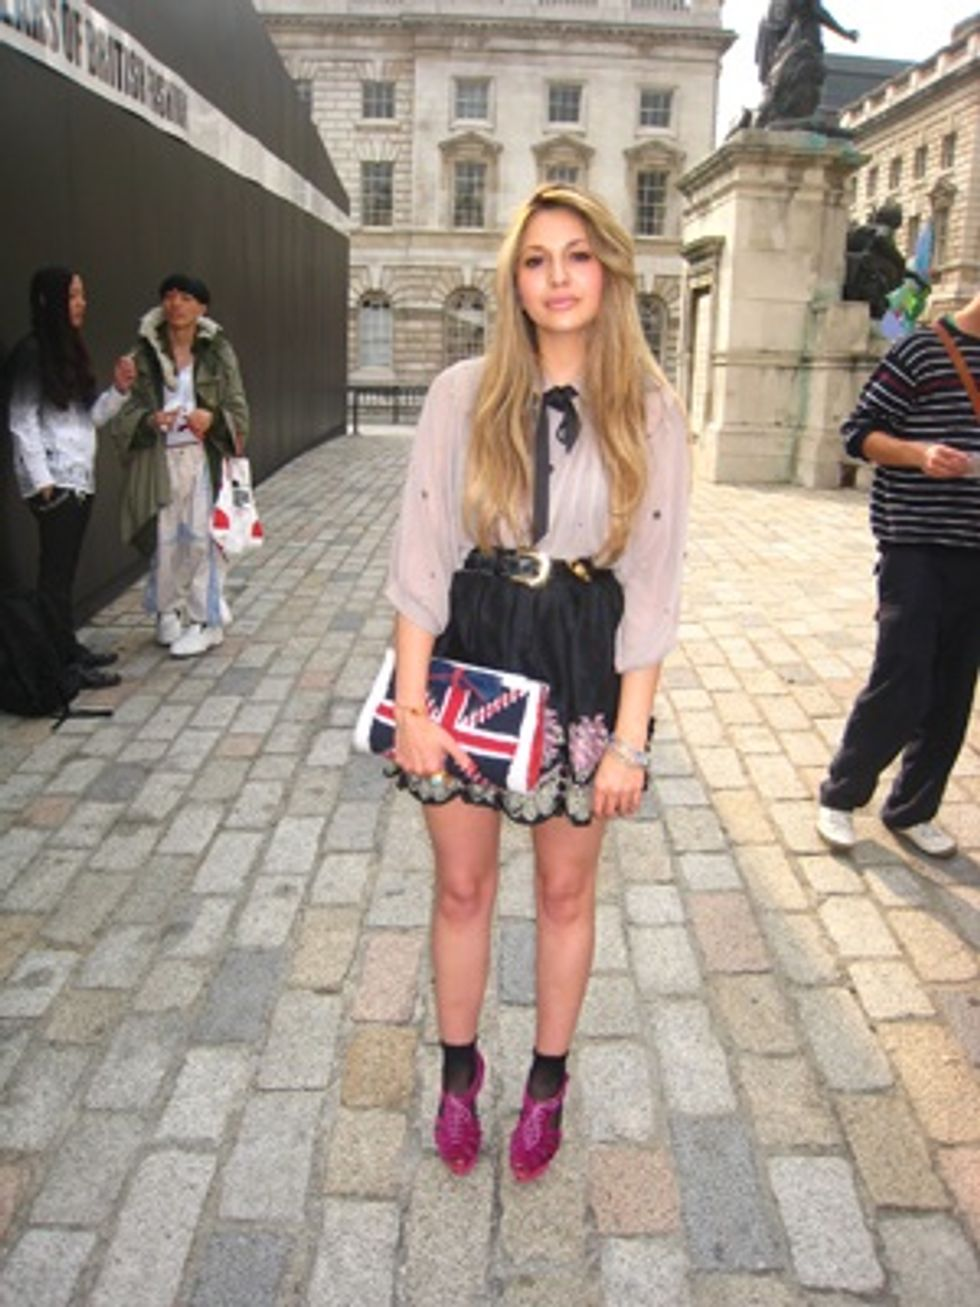 London Fashion Week Report: Cornered Style With Some of London's Best Dressed